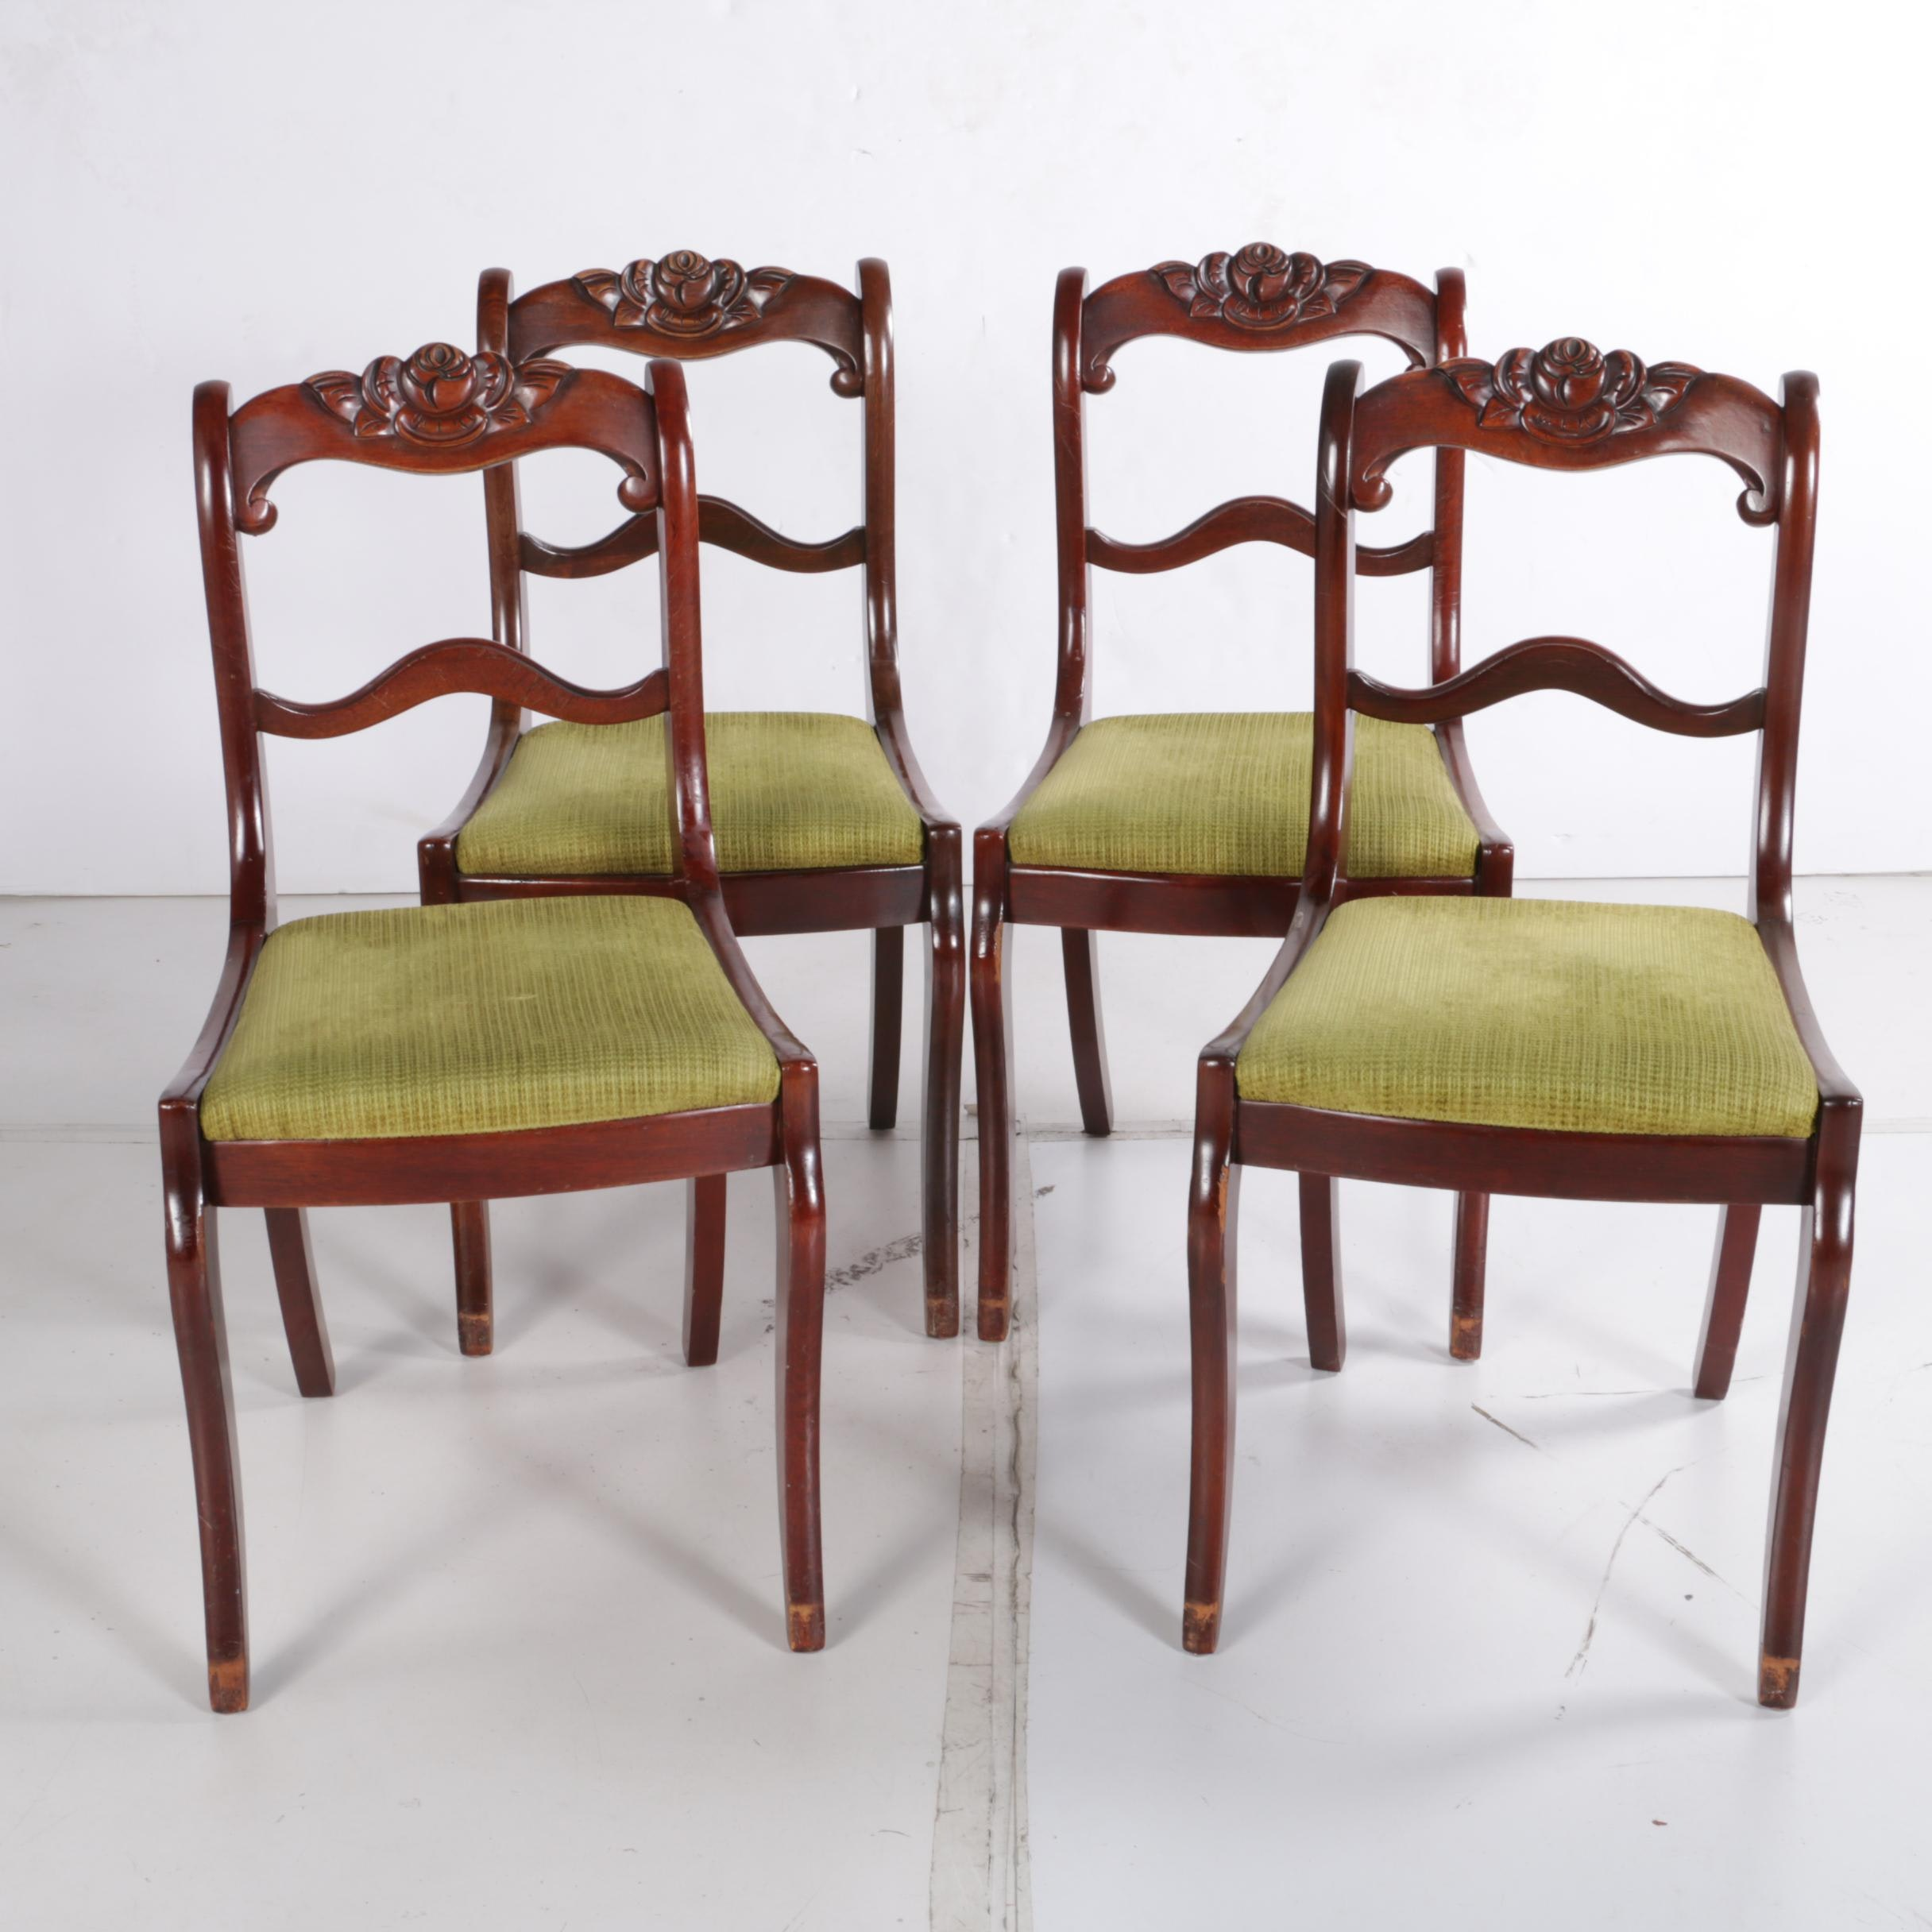 Vintage Ladder Back Dining Chairs